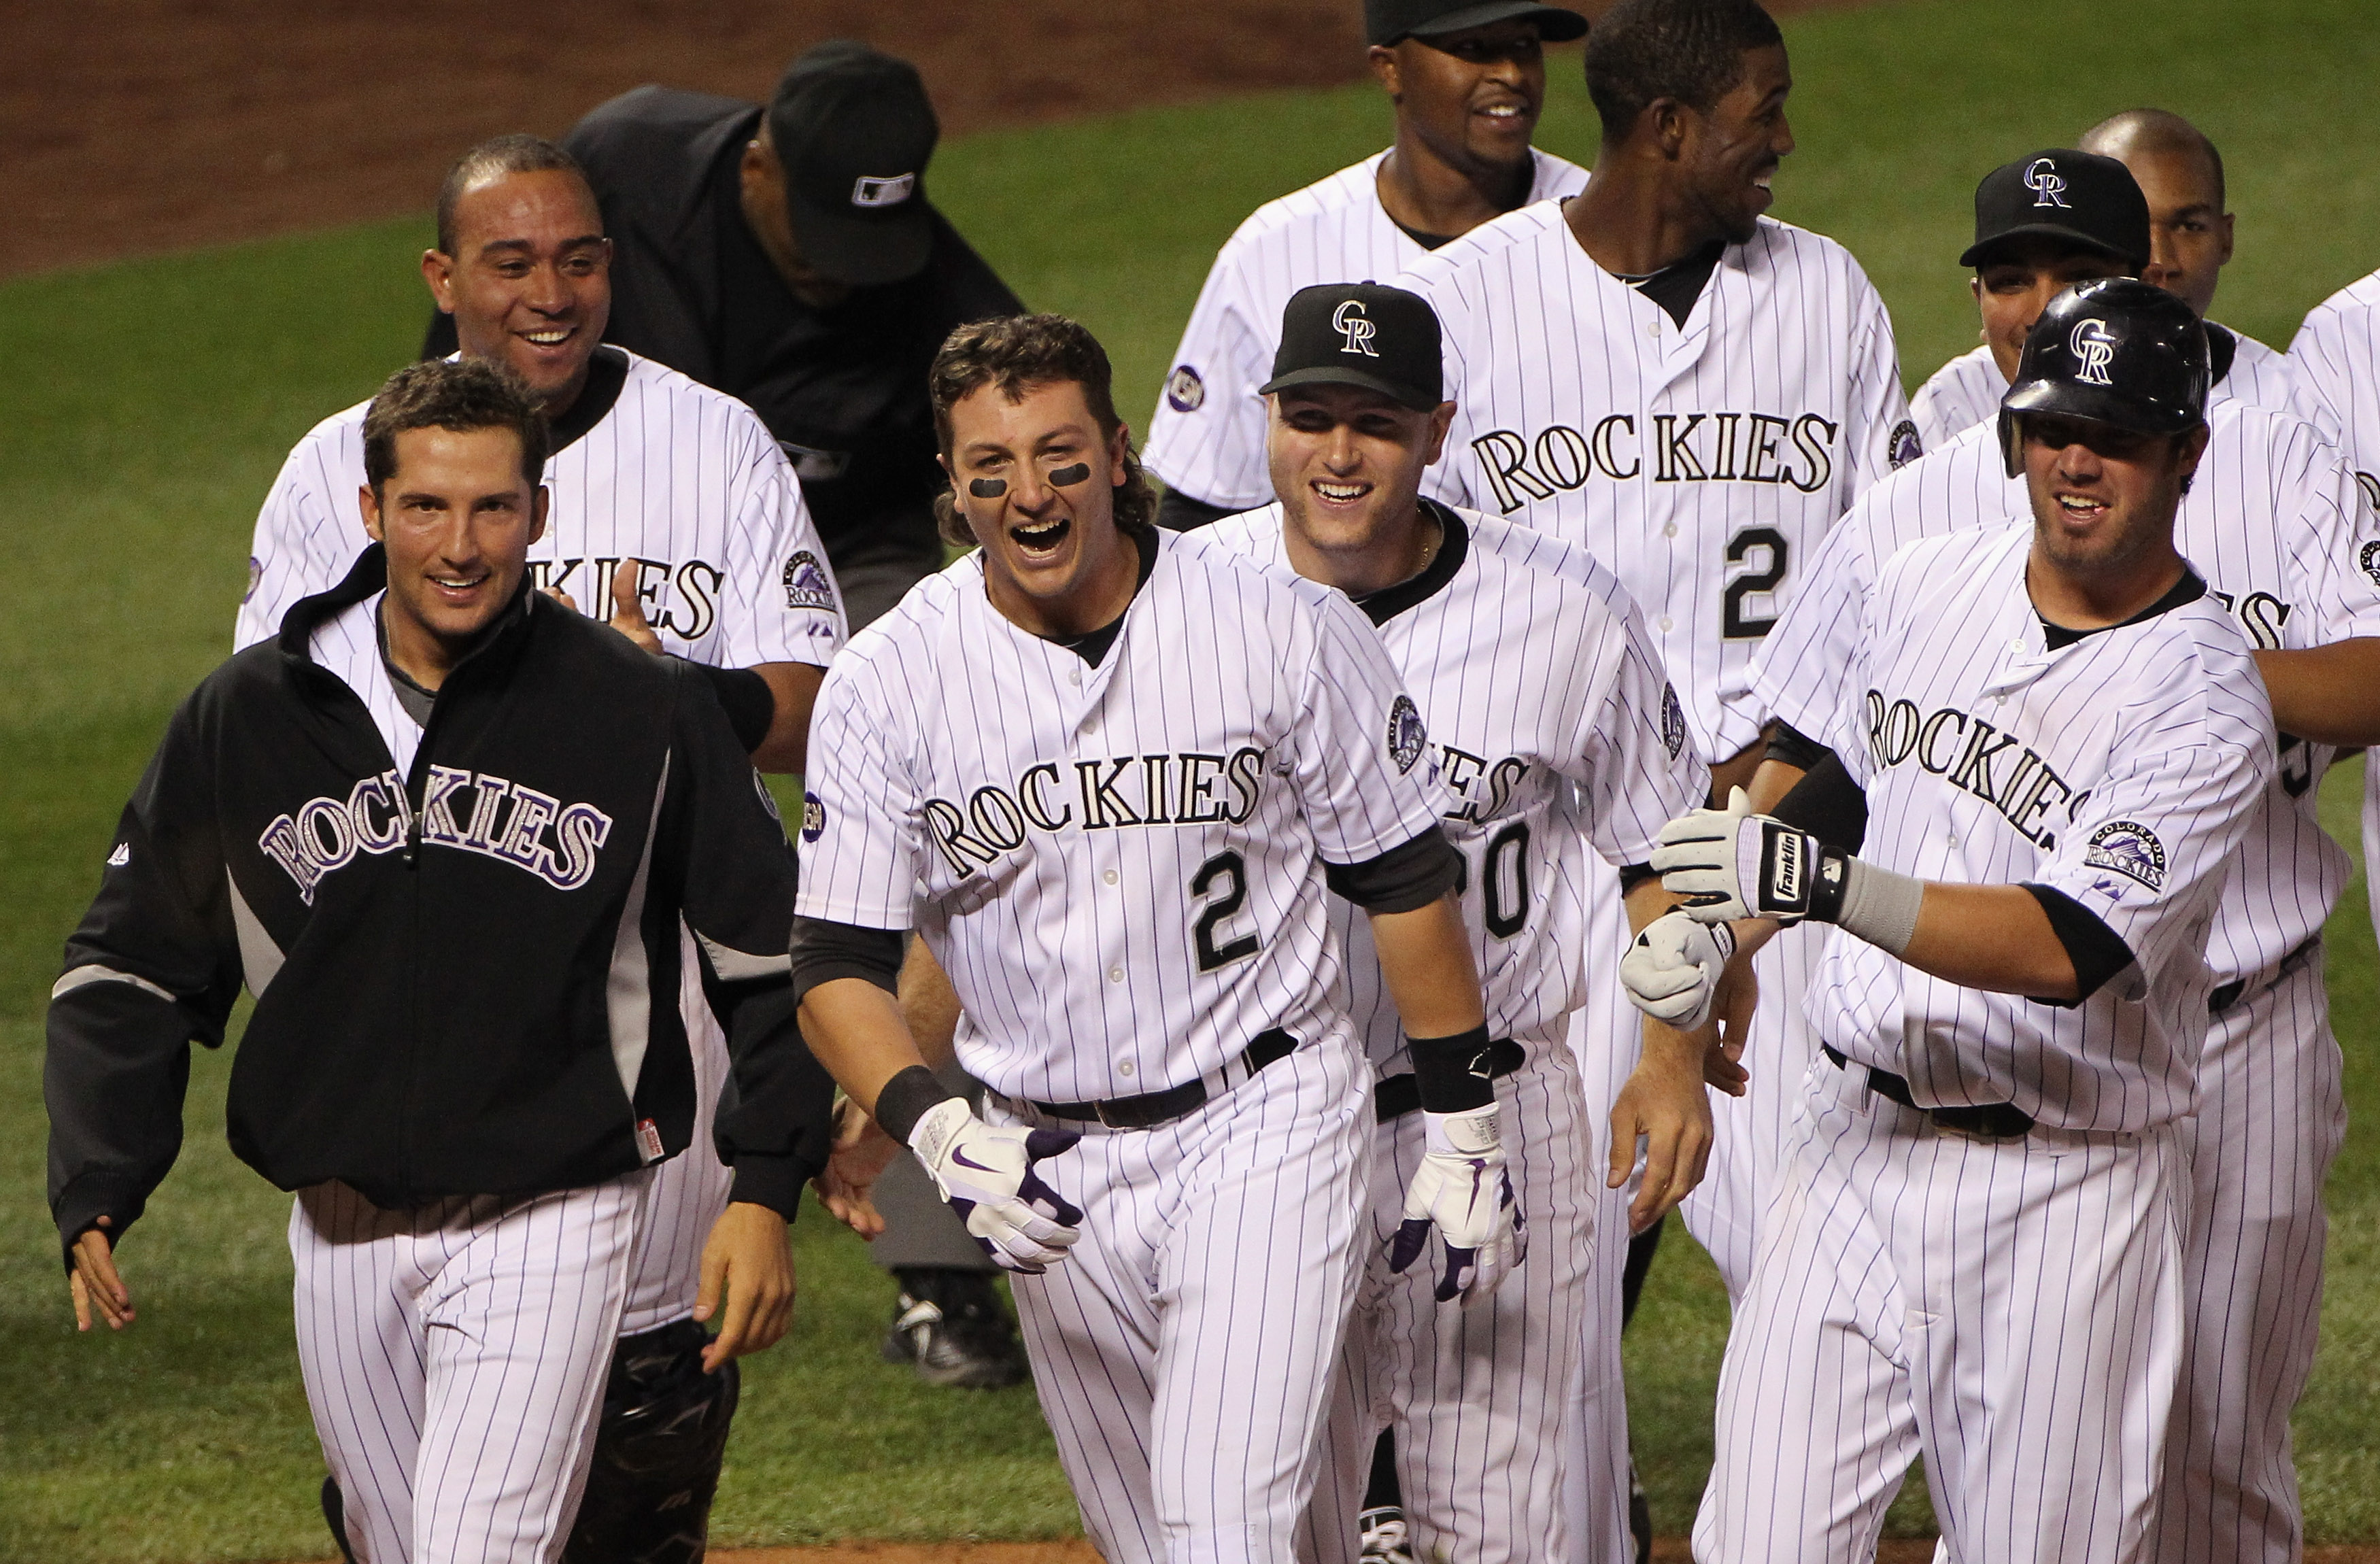 The Colorado Rockies have some fine young talent on their squad.  Can they supplant the Giants atop the division in 2011?